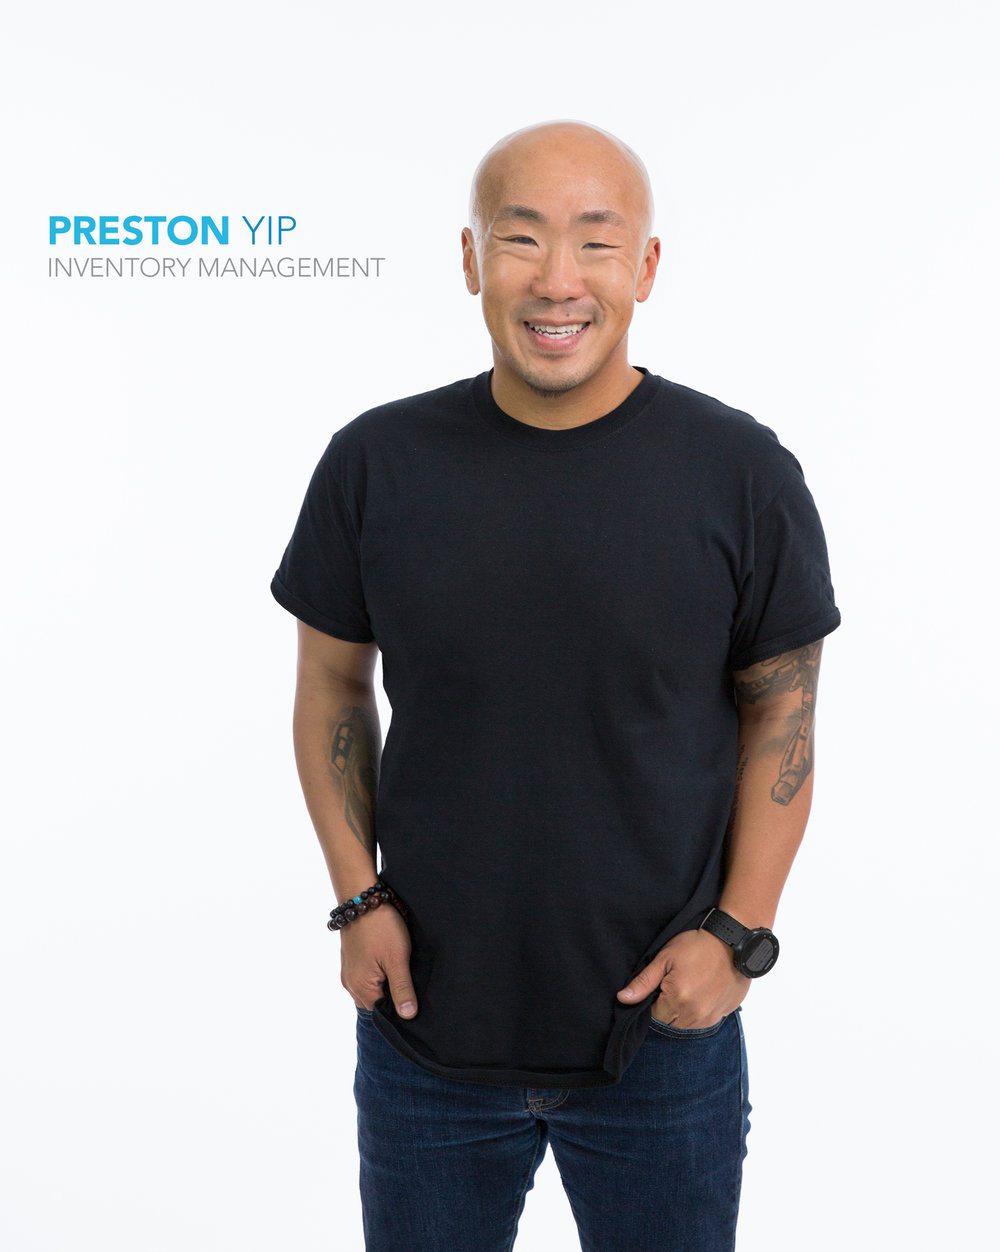 Gap Inc. employee Preston Yip